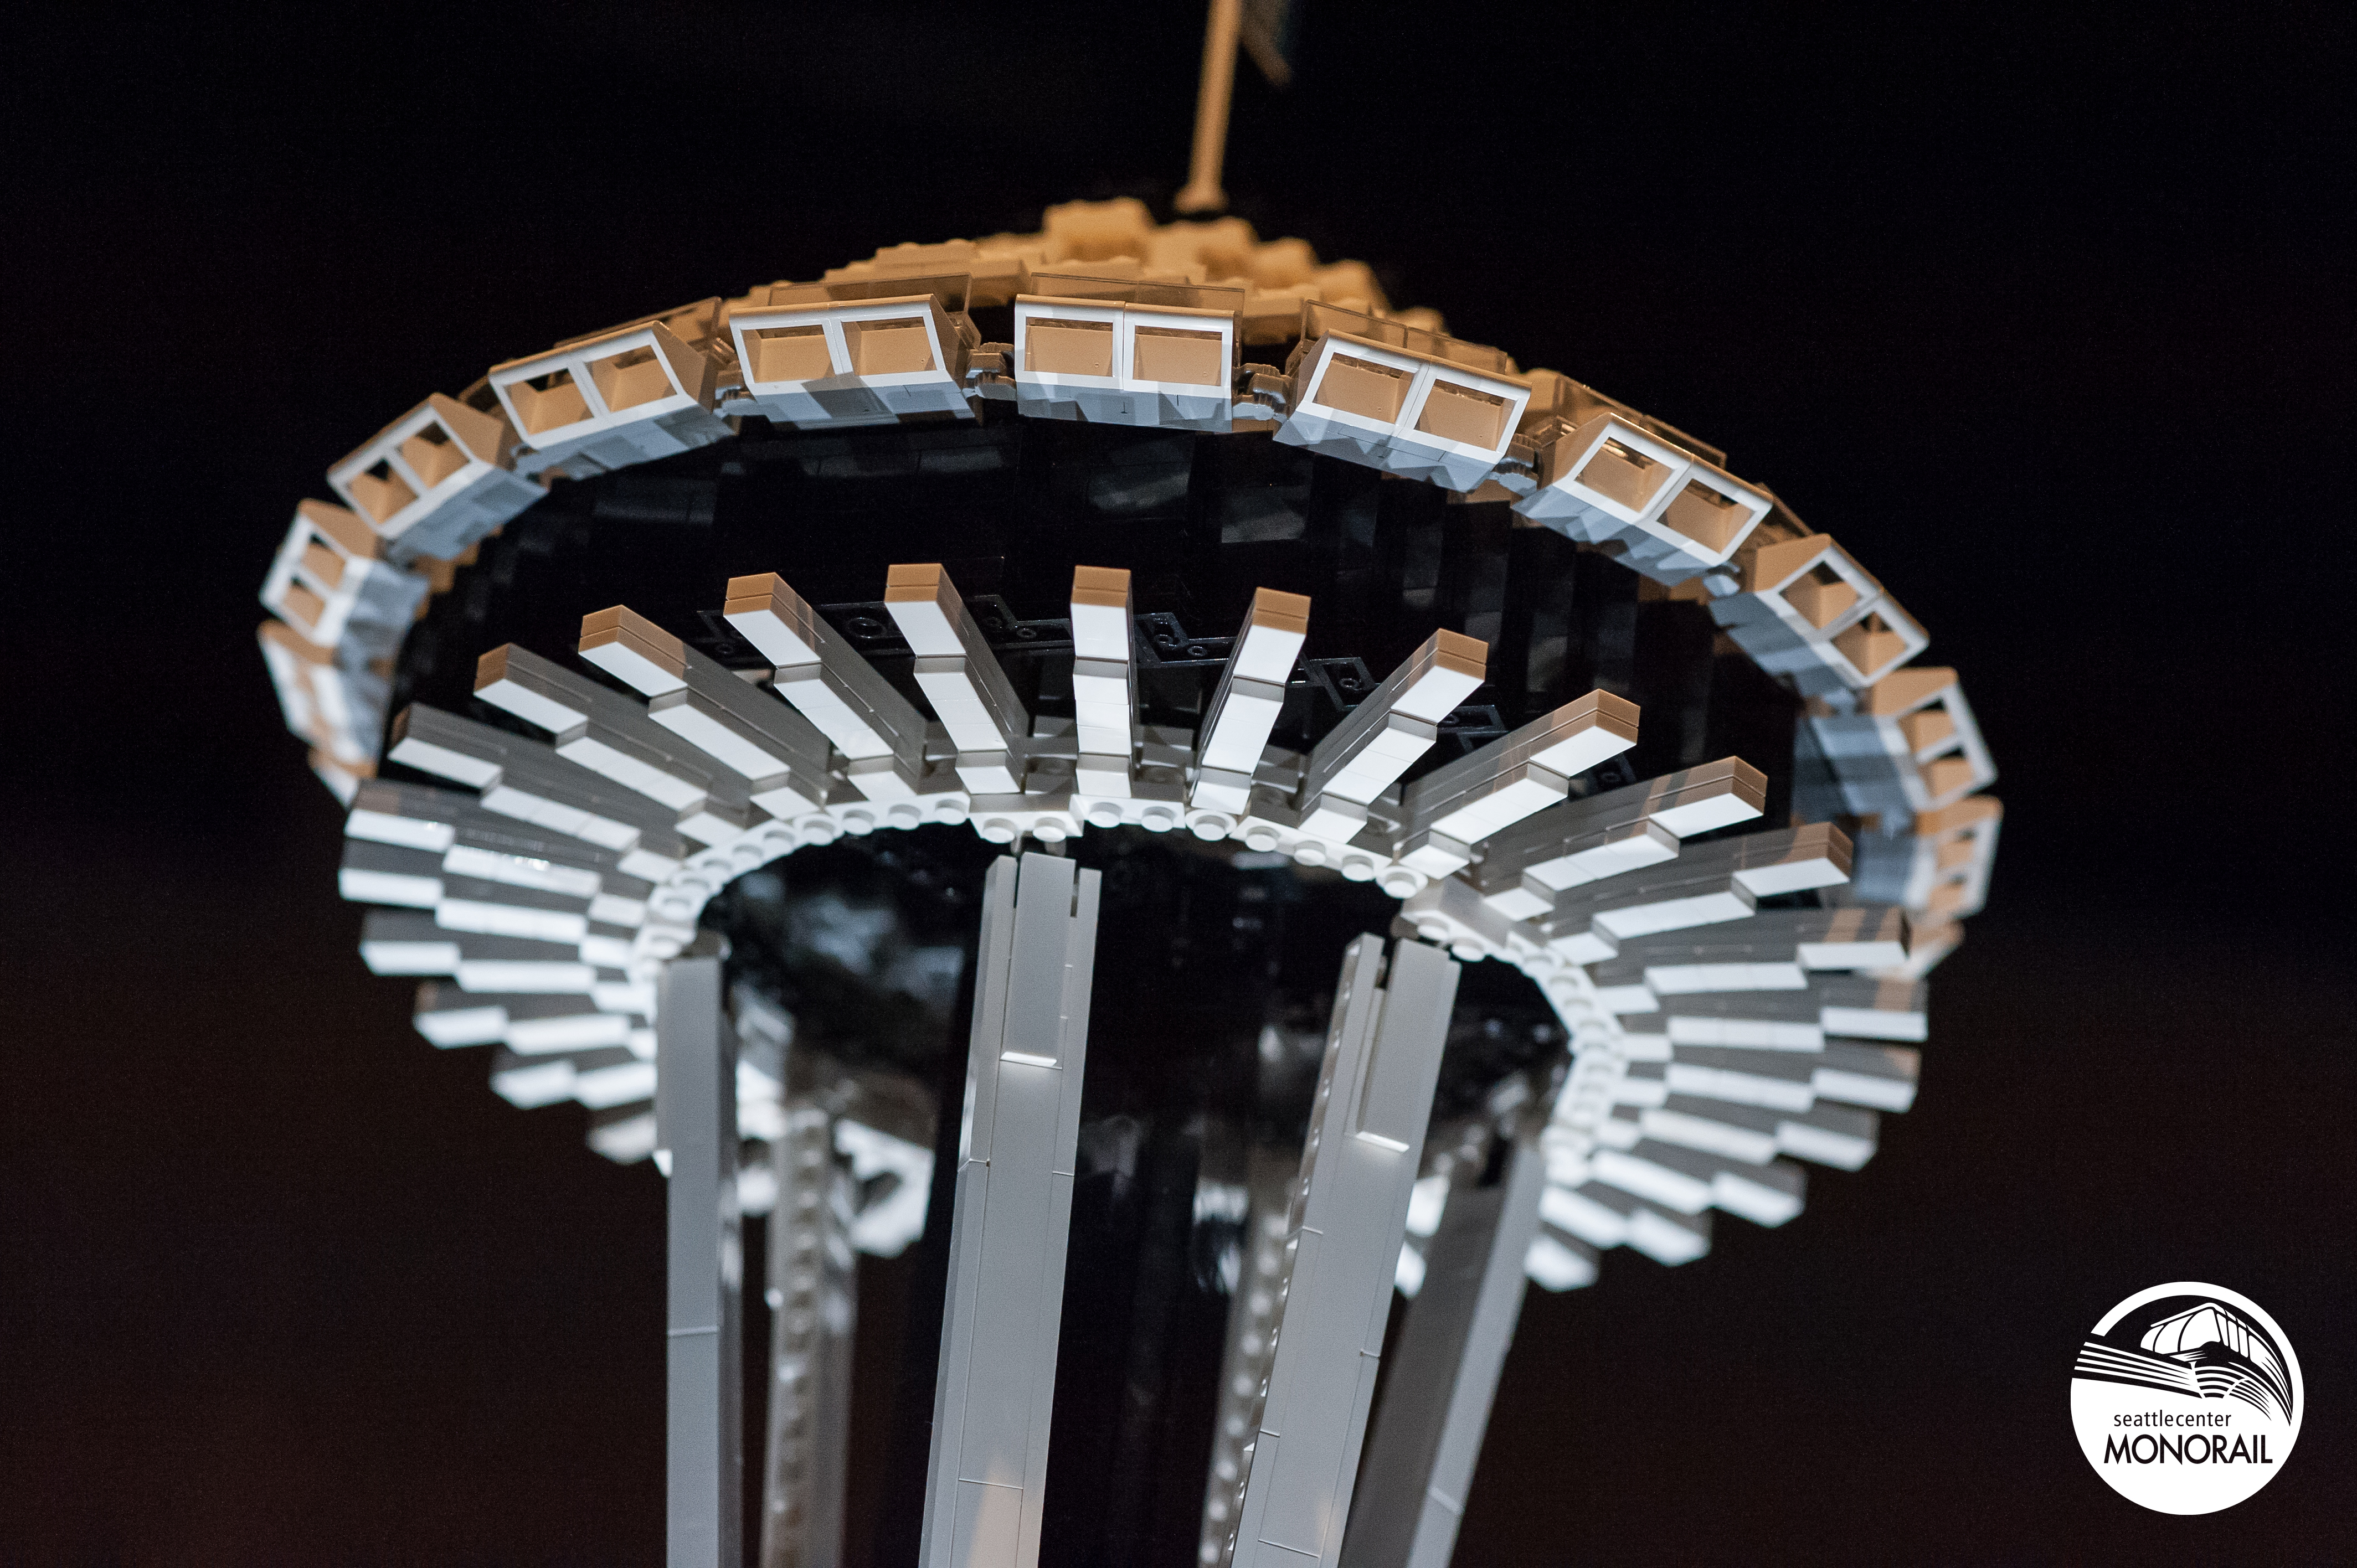 Seattle Space Needle made of Legos